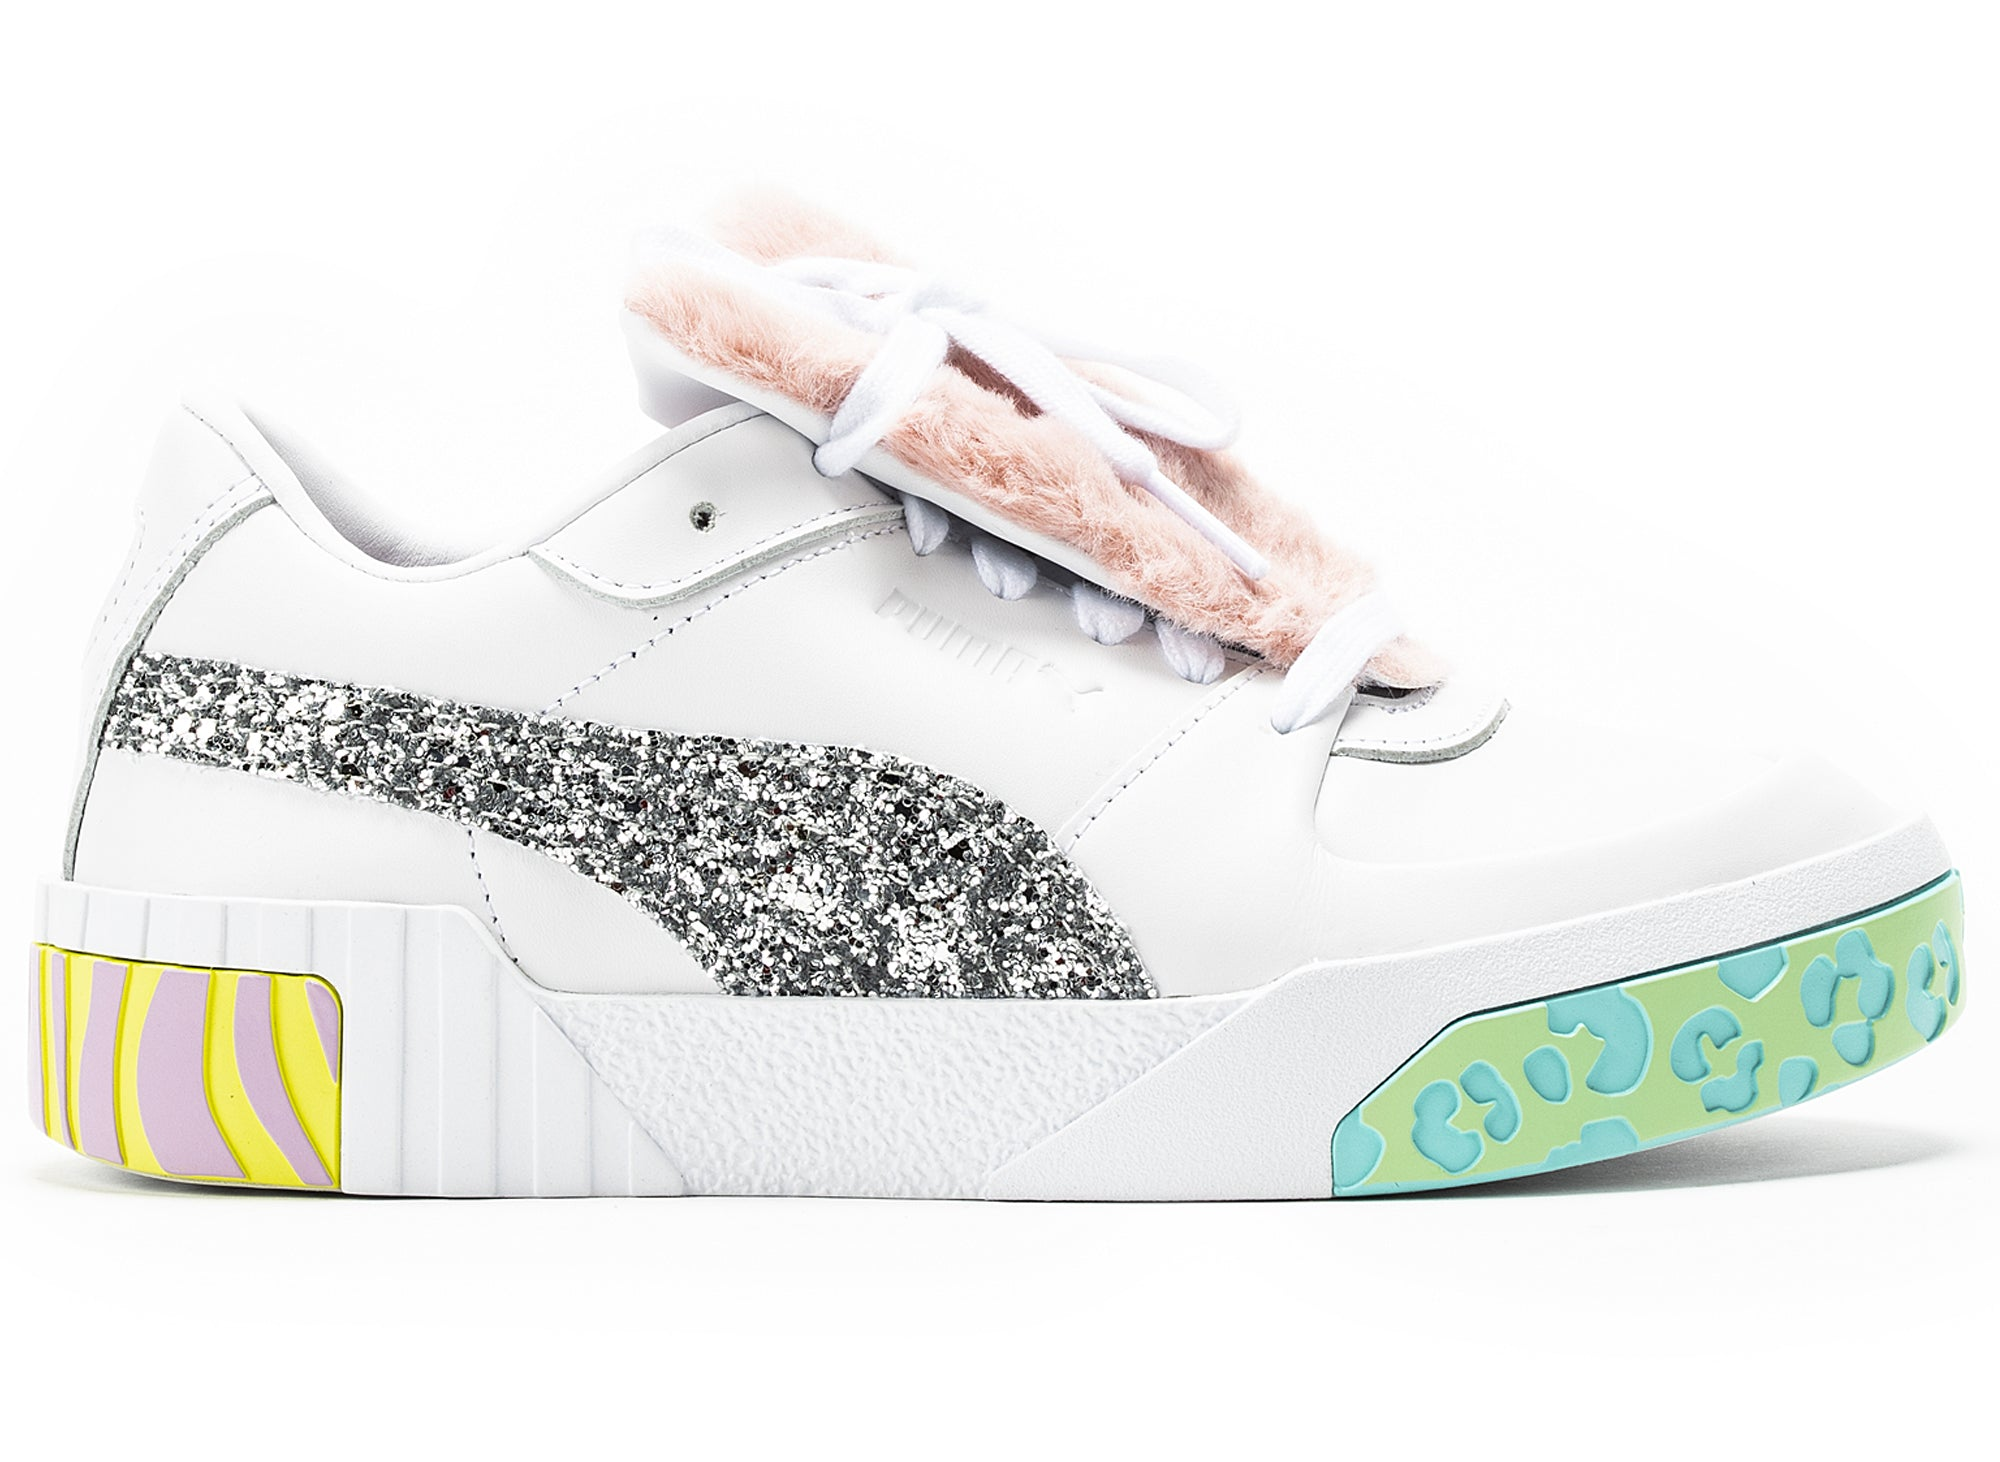 Puma Cali Fur Sophia Webster